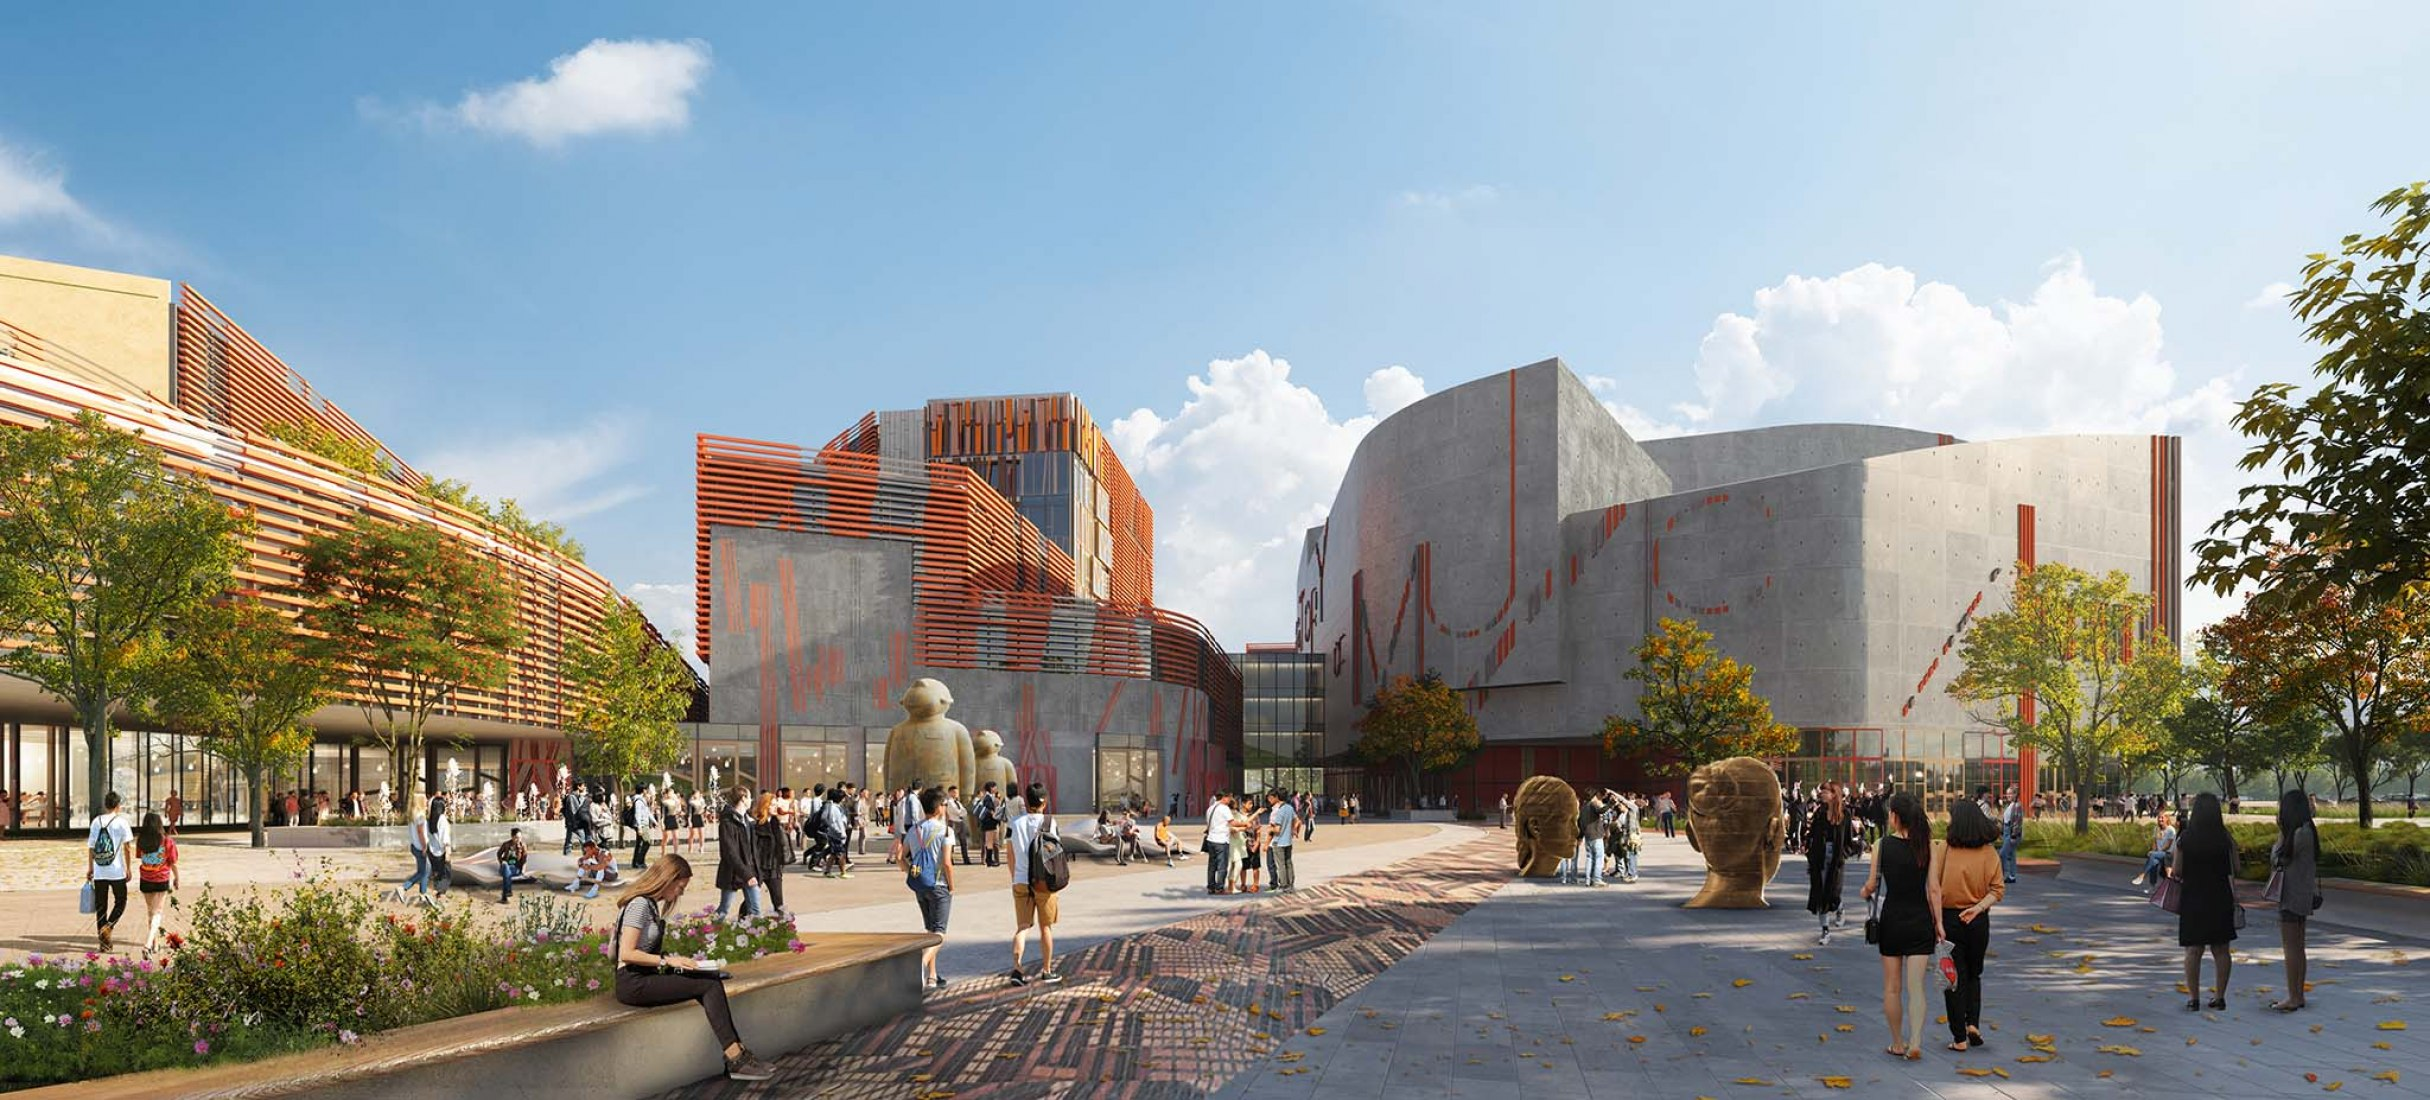 Shenzhen Conservatory of Music by Miralles Tagliabue EMBT. Renderings by Fancy